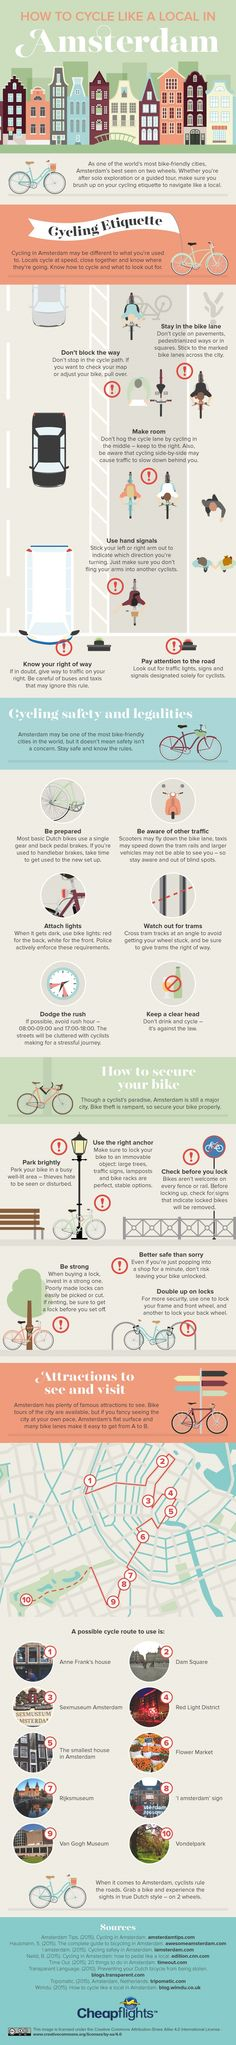 A Cycling Guide to Amsterdam